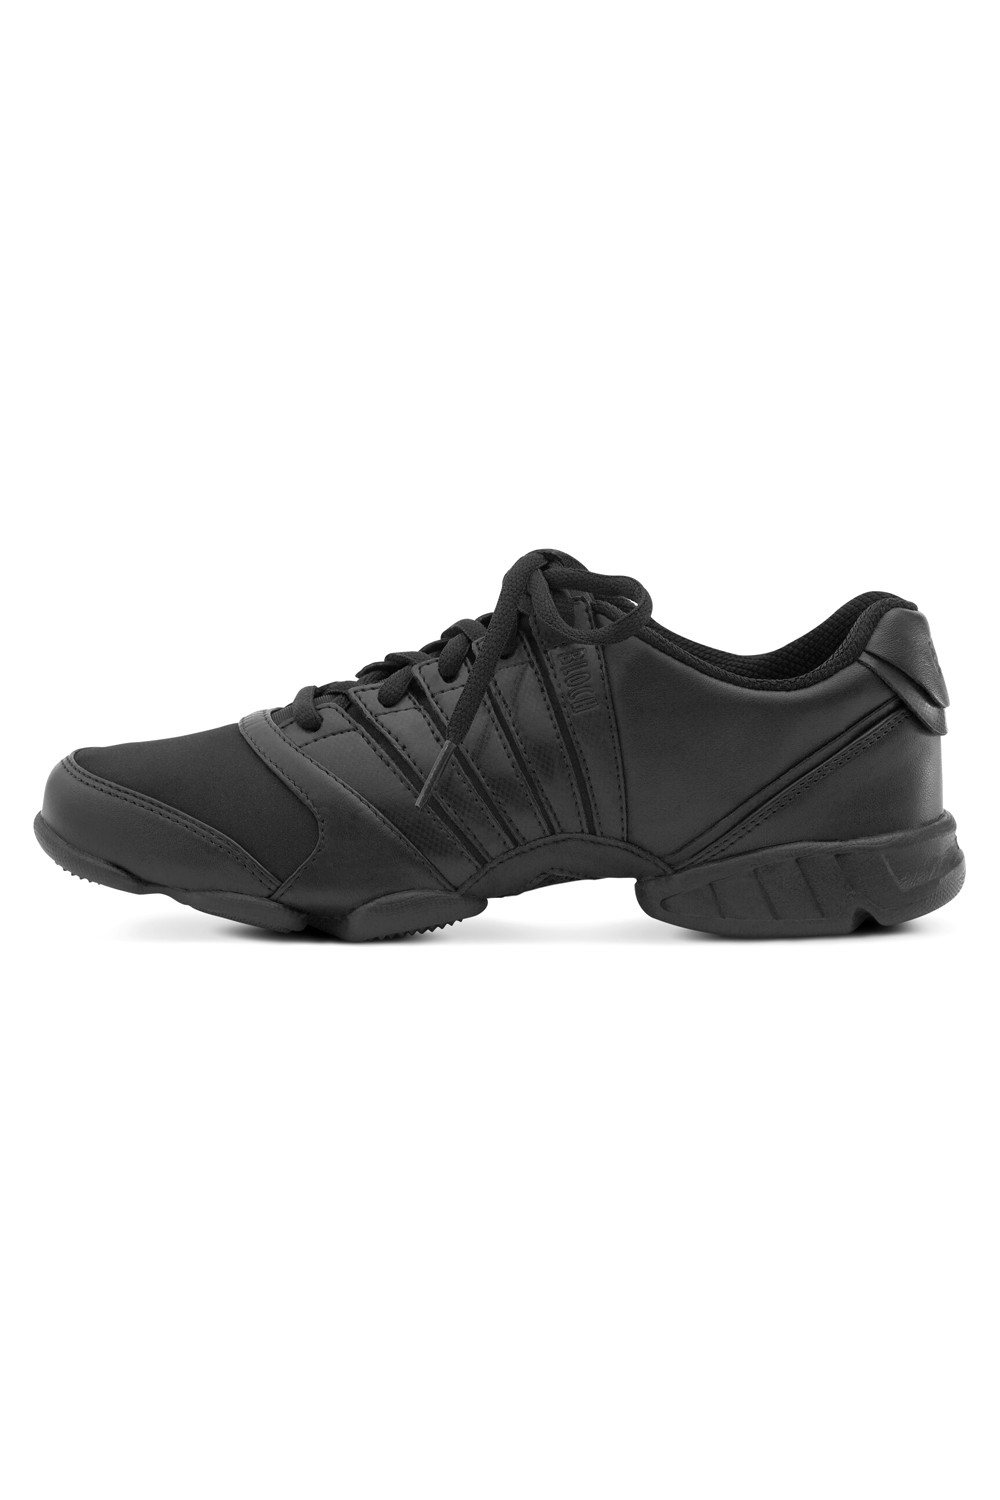 Trinity - Mens Men's Dance Sneakers